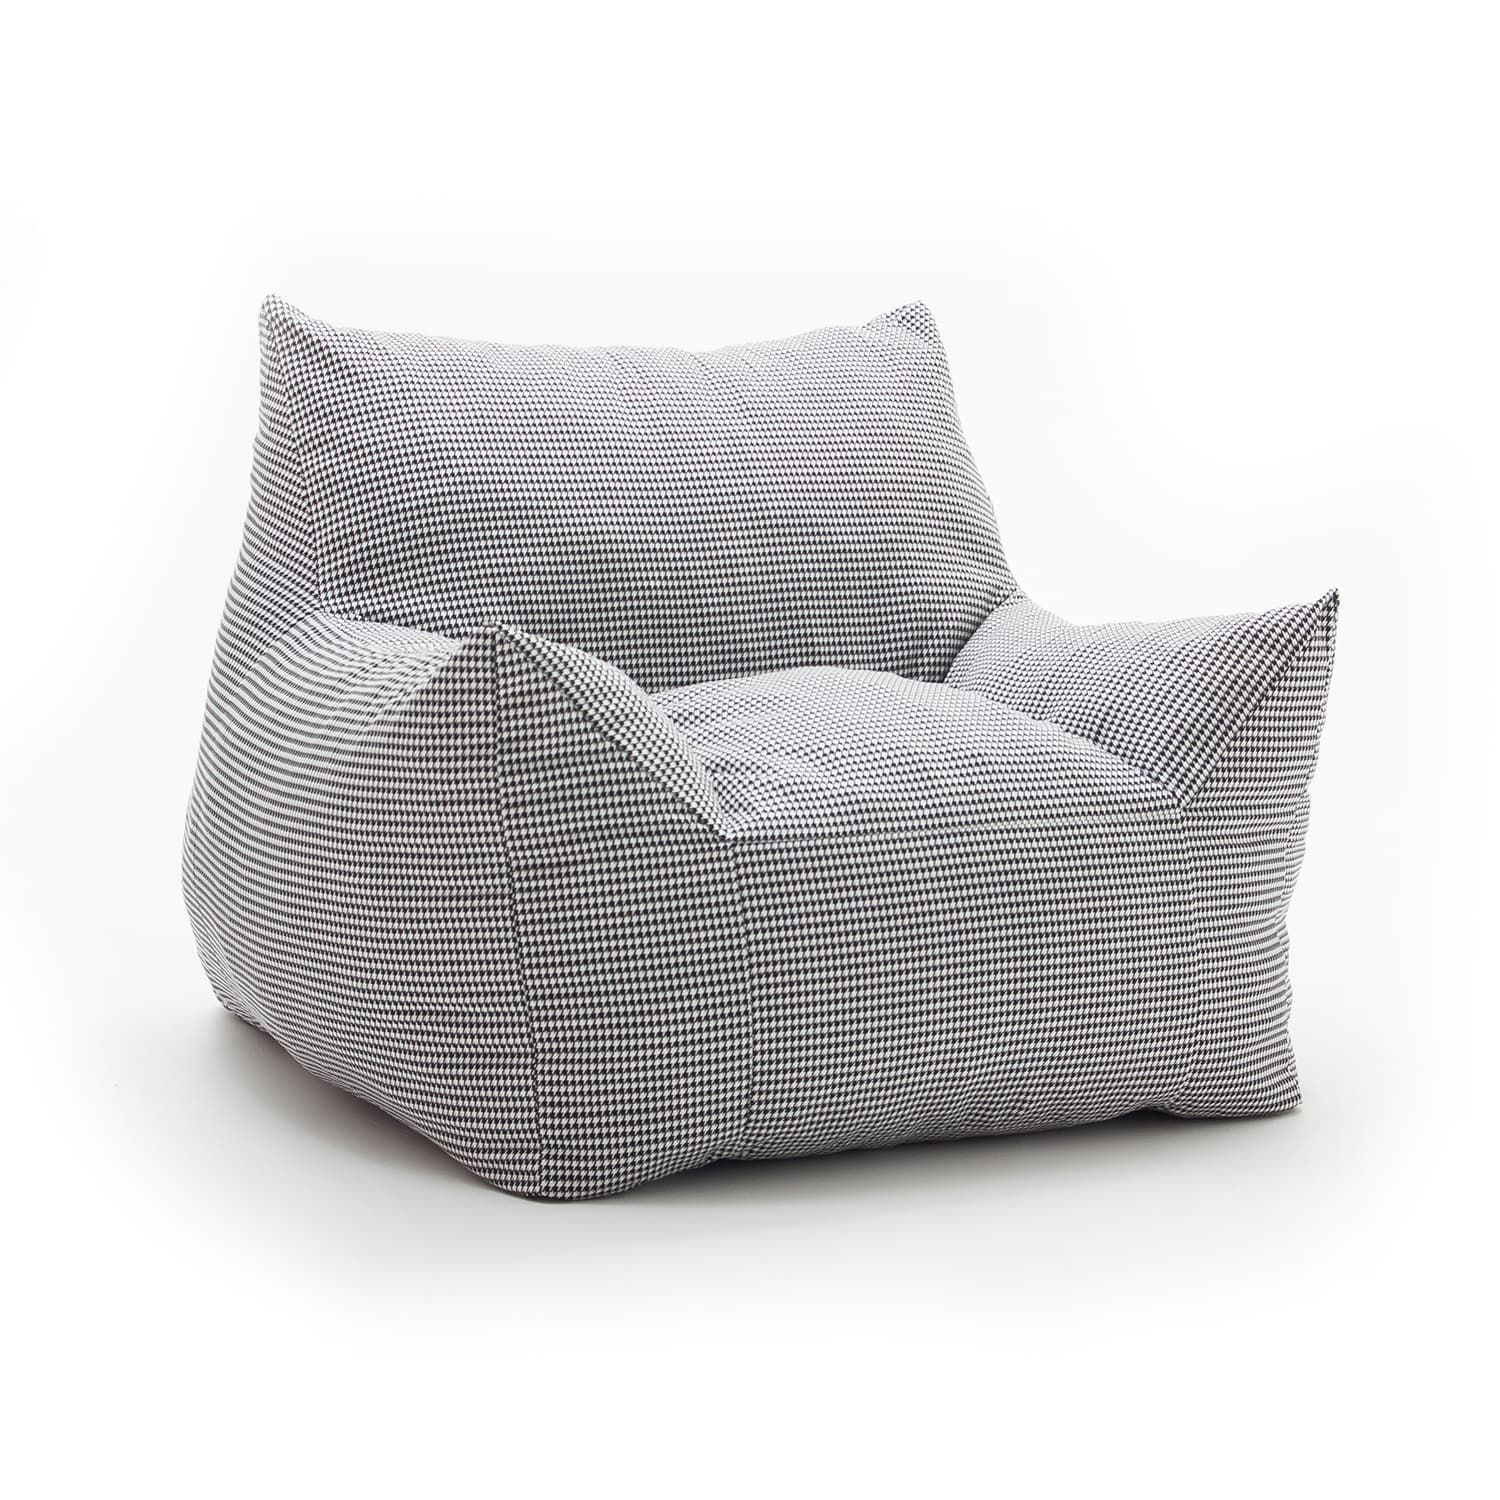 Fufsack Memory Foam Imperial Houndstooth Black And White Bean Bag